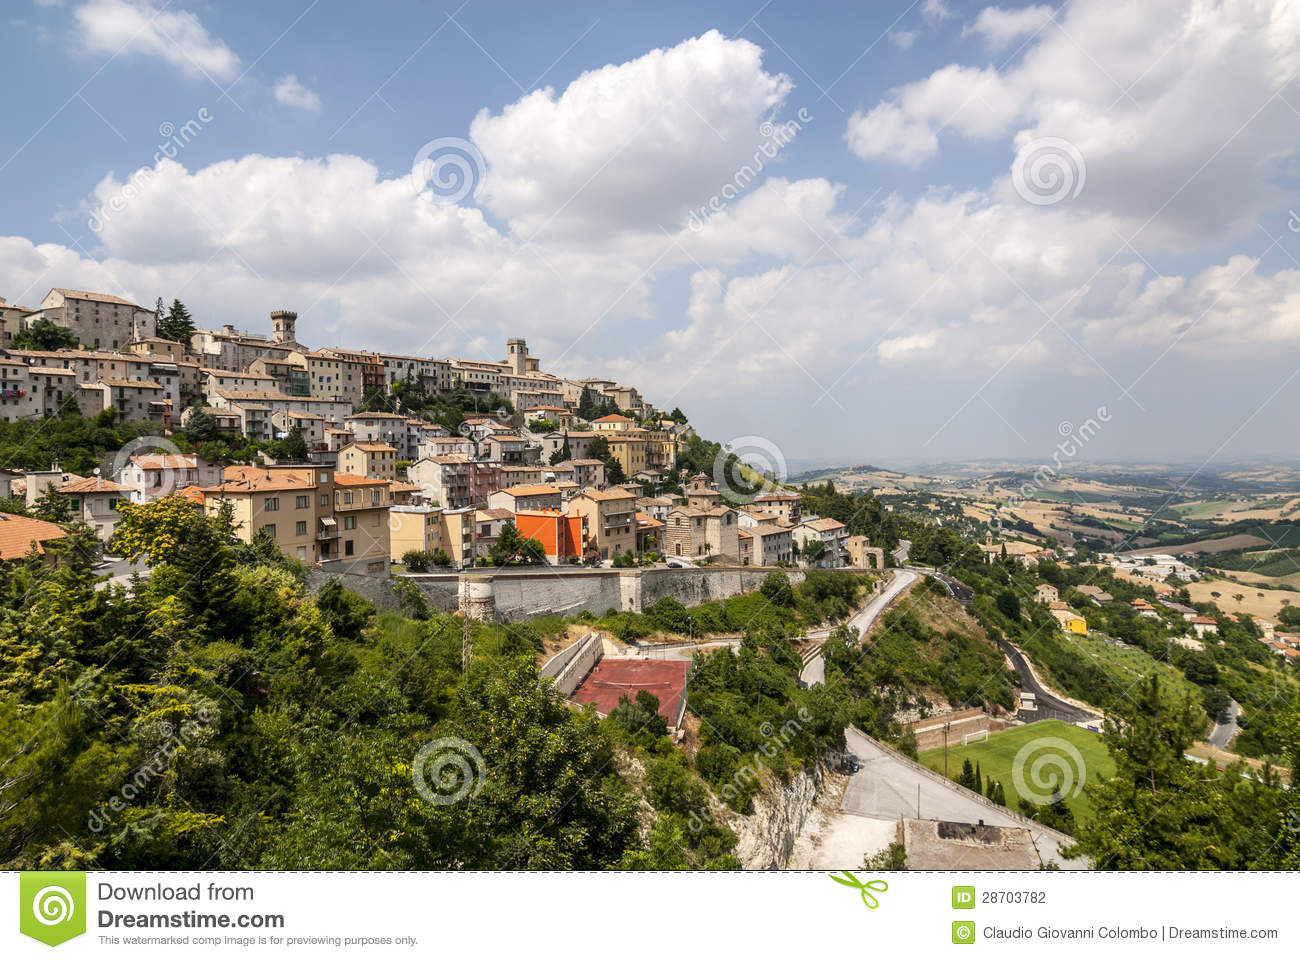 Arcevia Italy  City new picture : Panoramic view of Arcevia Pesaro Urbino, Marches, Italy at summer.